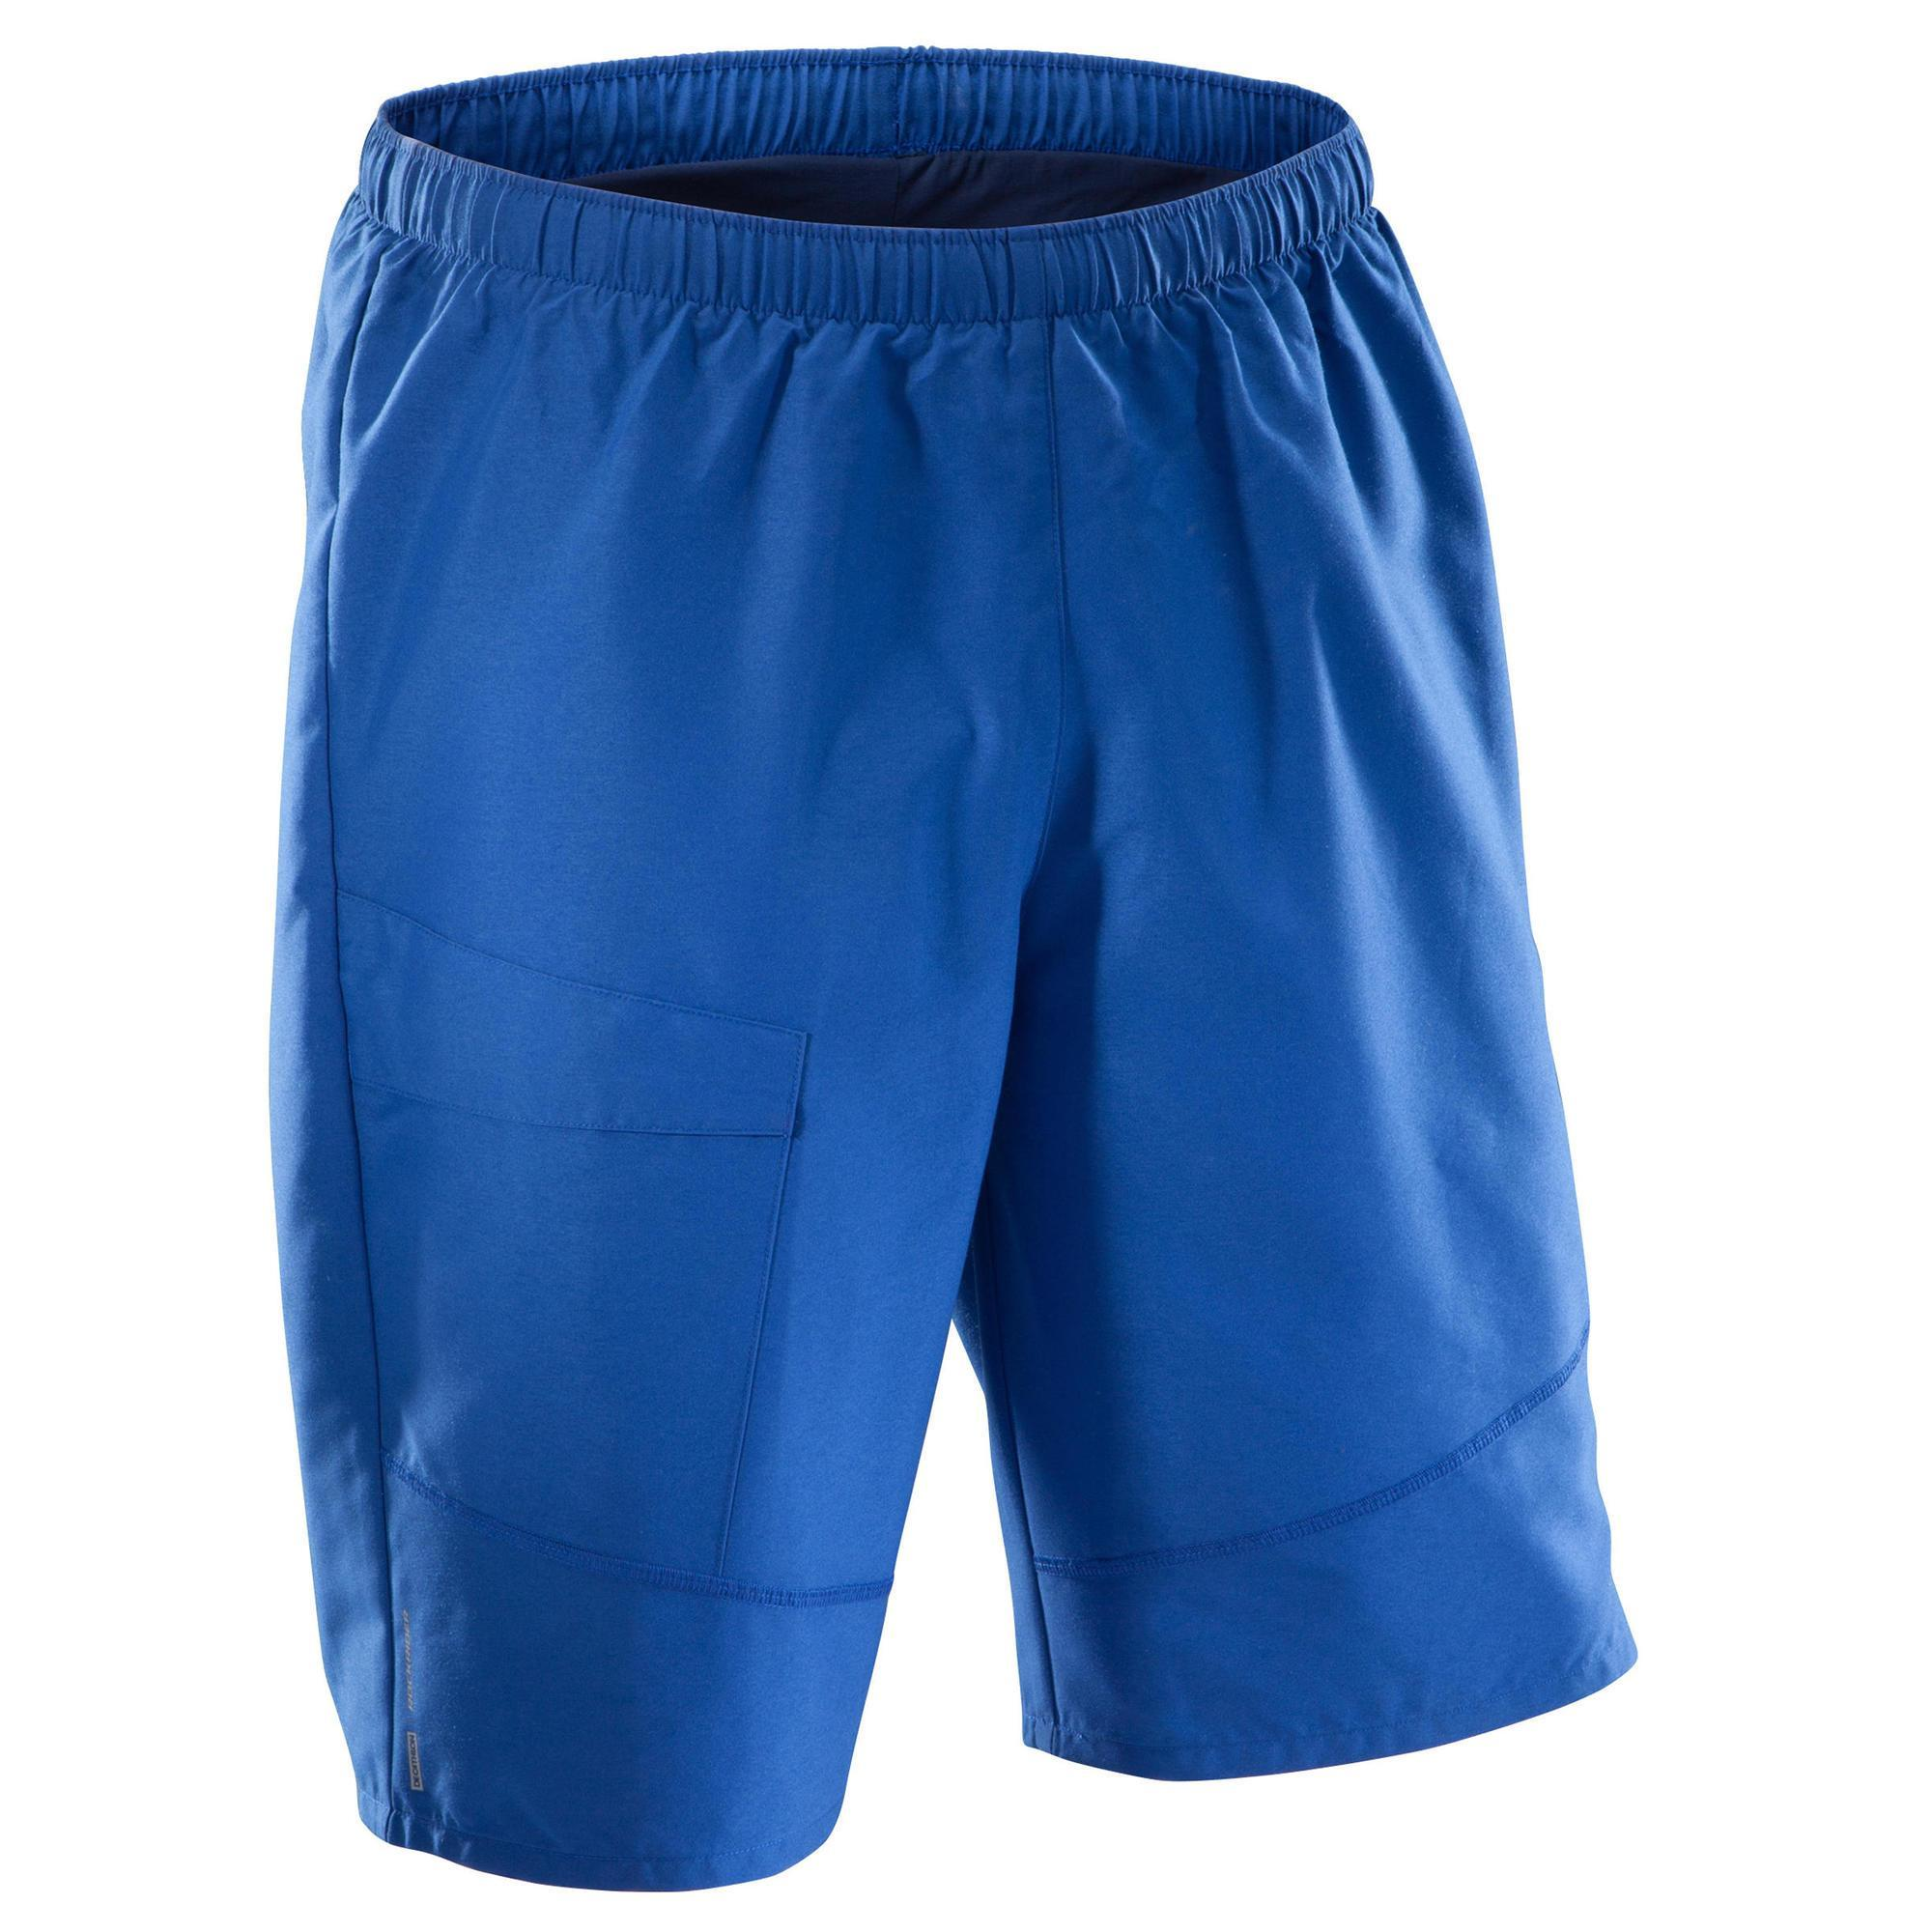 Image of Mountainbike-Shorts MTB Herren blau Damen L